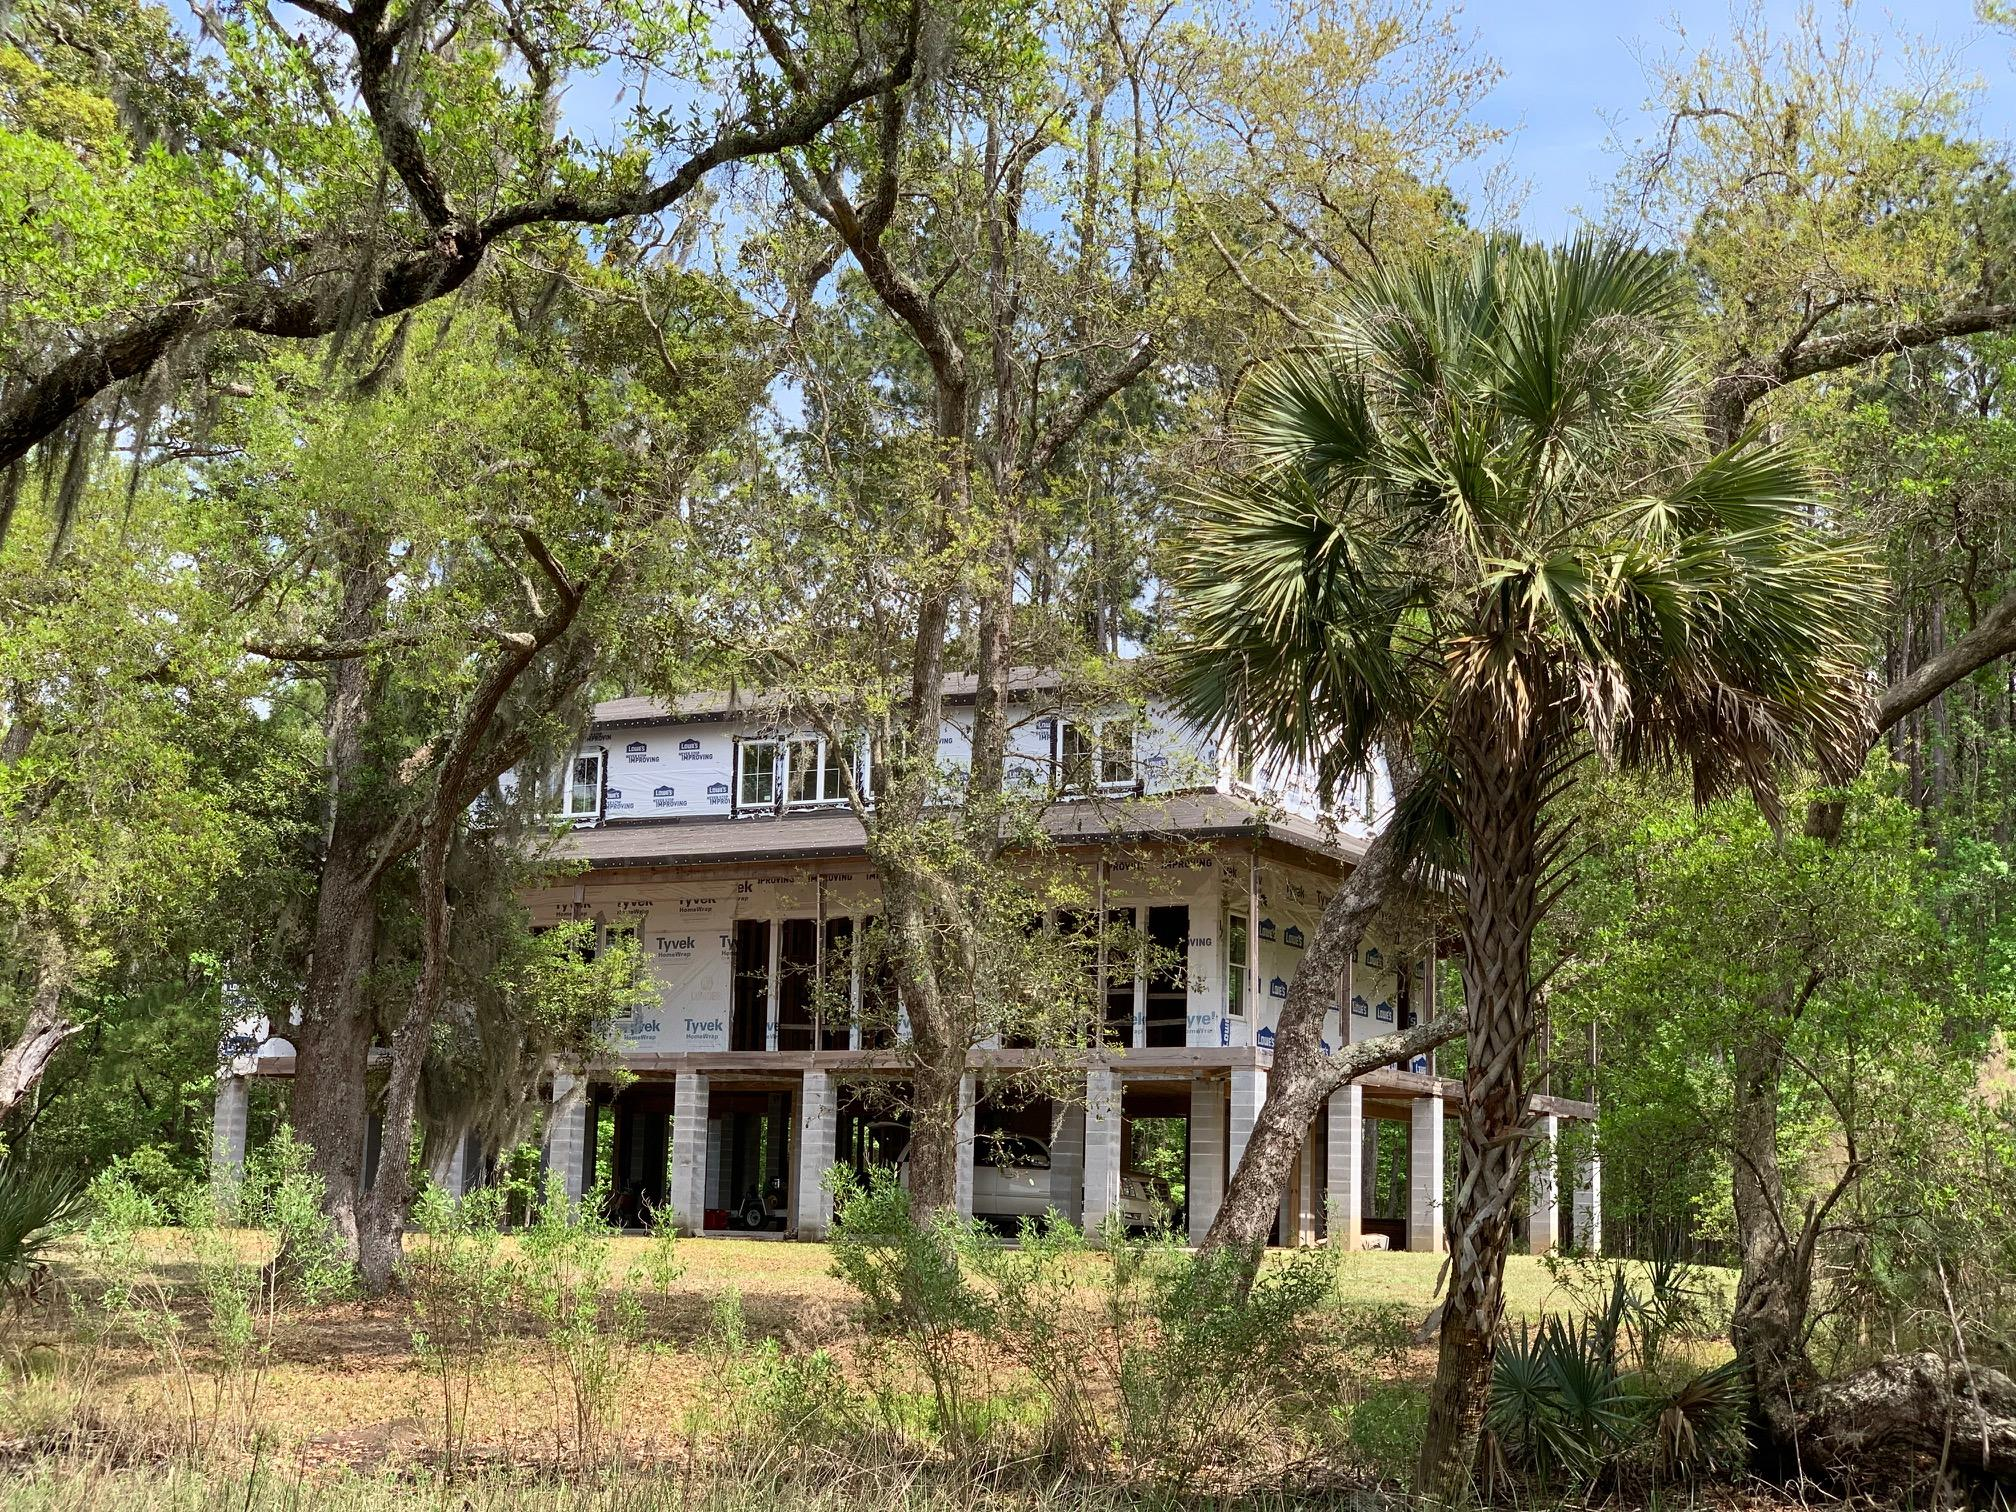 Polly Point Plantation Homes For Sale - 1356 Polly Point Rd, Wadmalaw Island, SC - 6